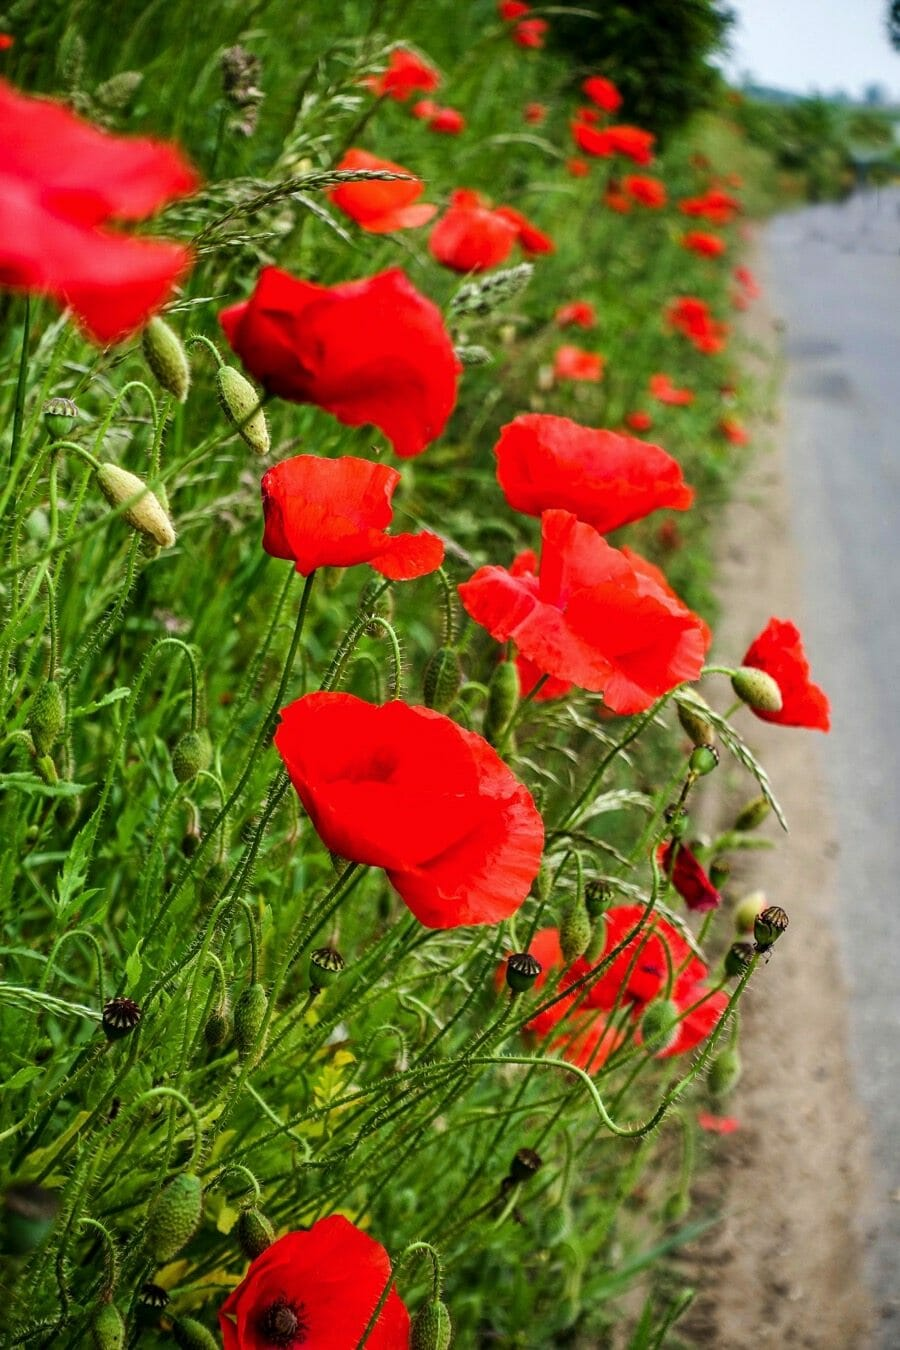 Finding poppies on a bike ride through the UK